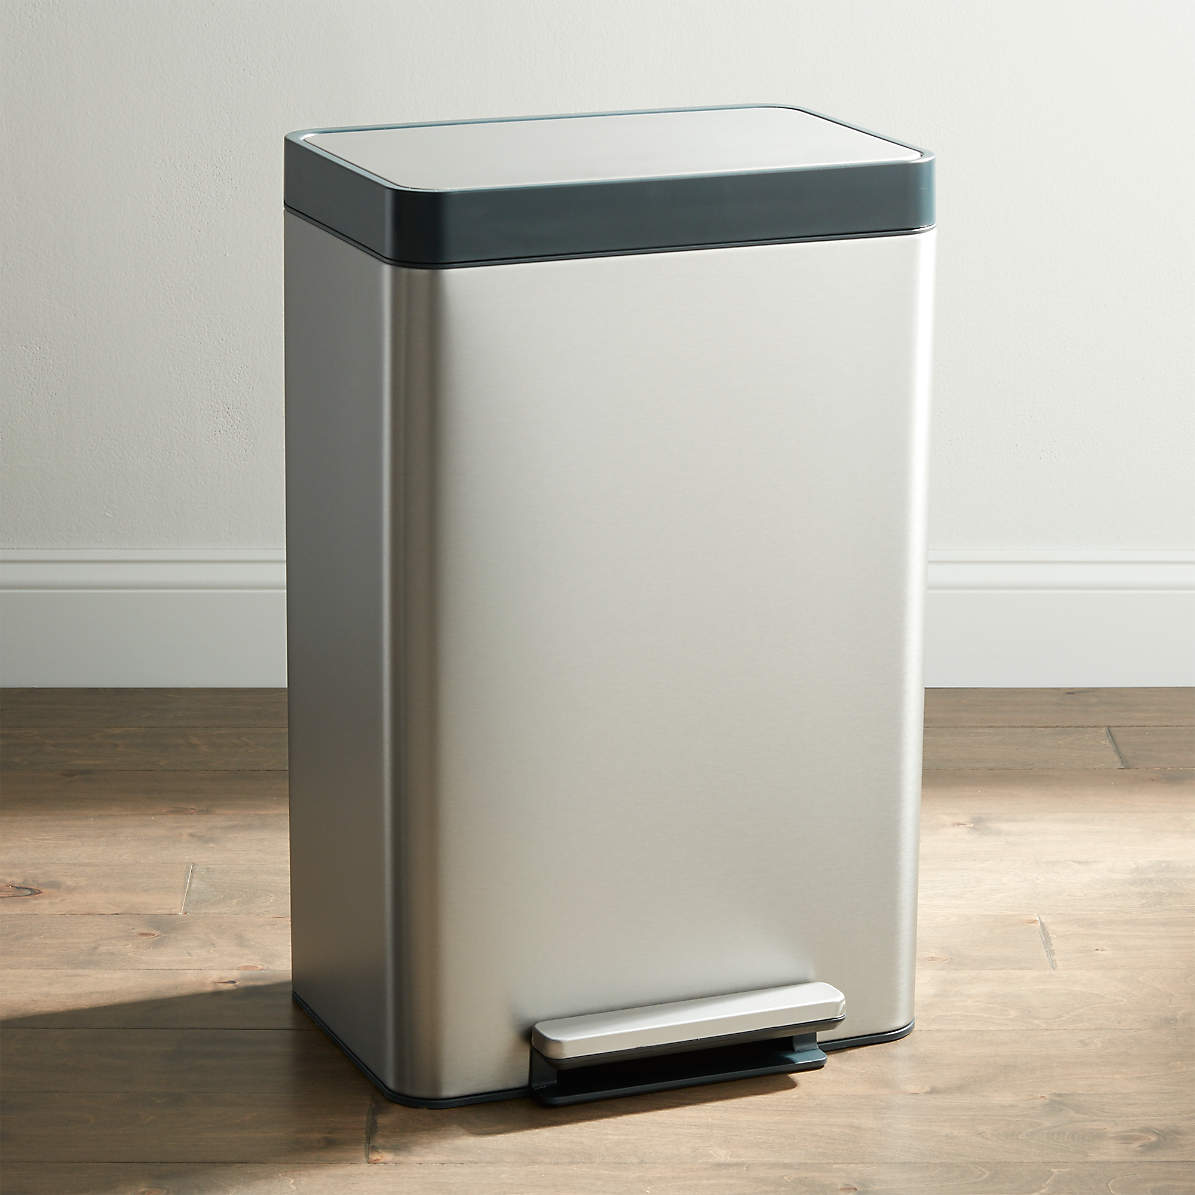 Picture of: Kohler Stainless Steel 13 Gallon Step Trash Can Reviews Crate And Barrel Canada